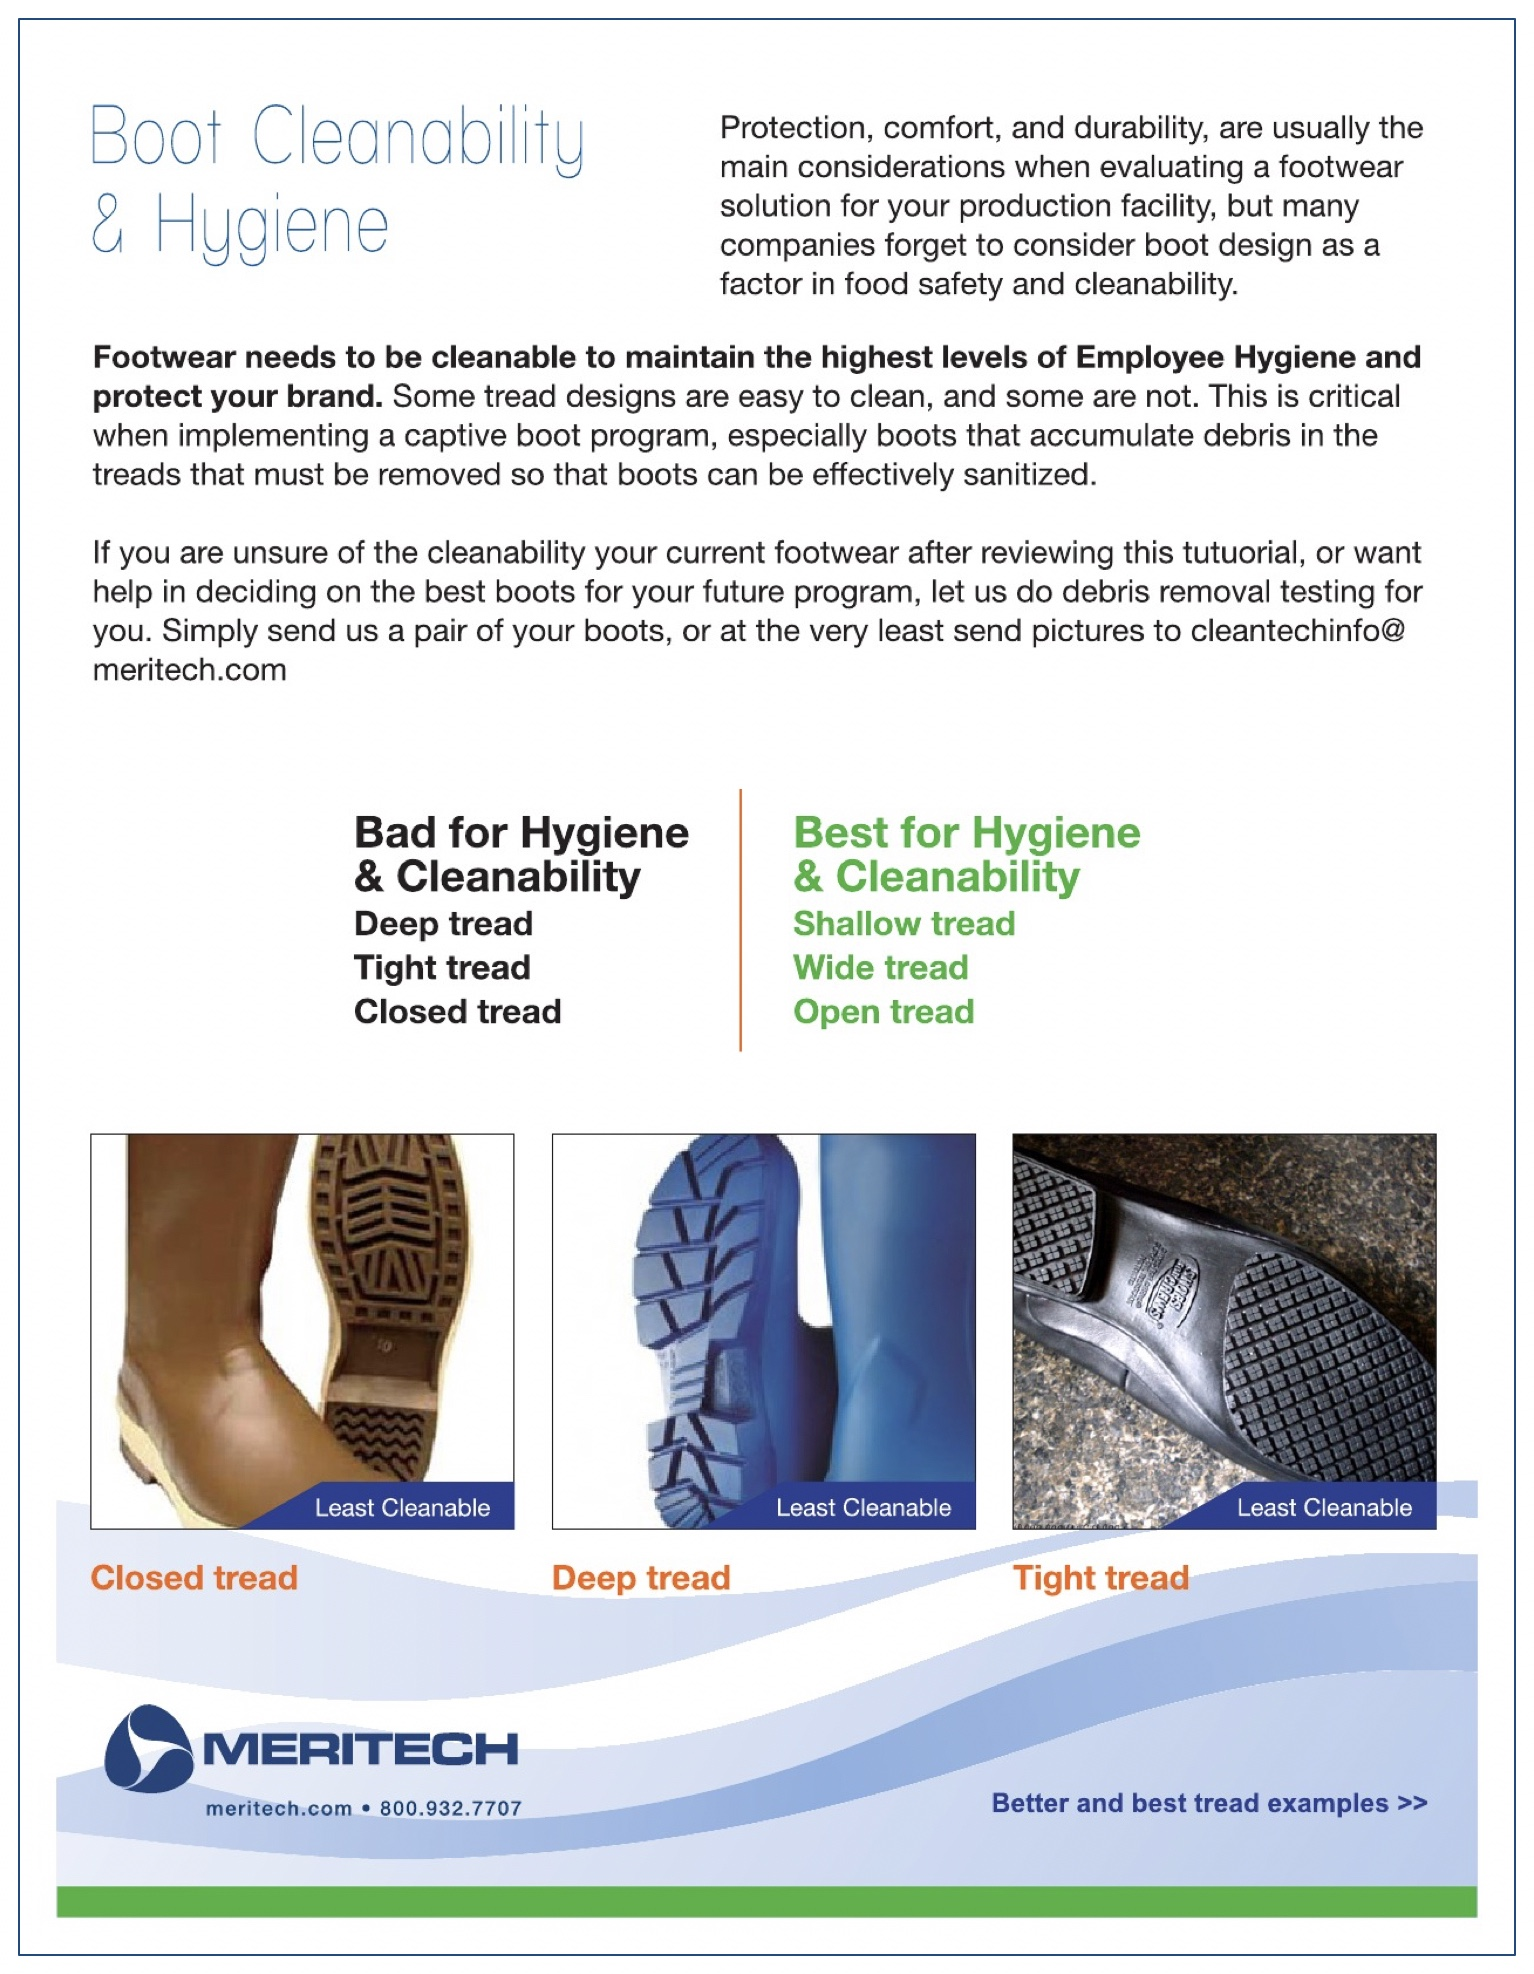 BootCleanability&HygieneGuideDownloadImage